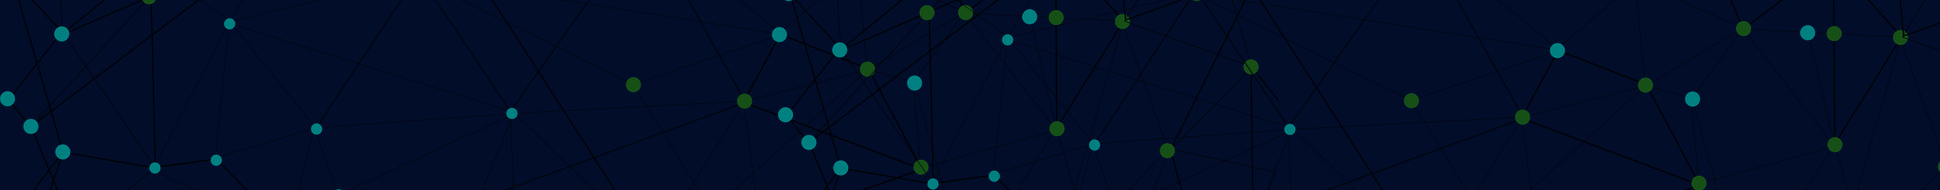 image of networked nodes with a dark background